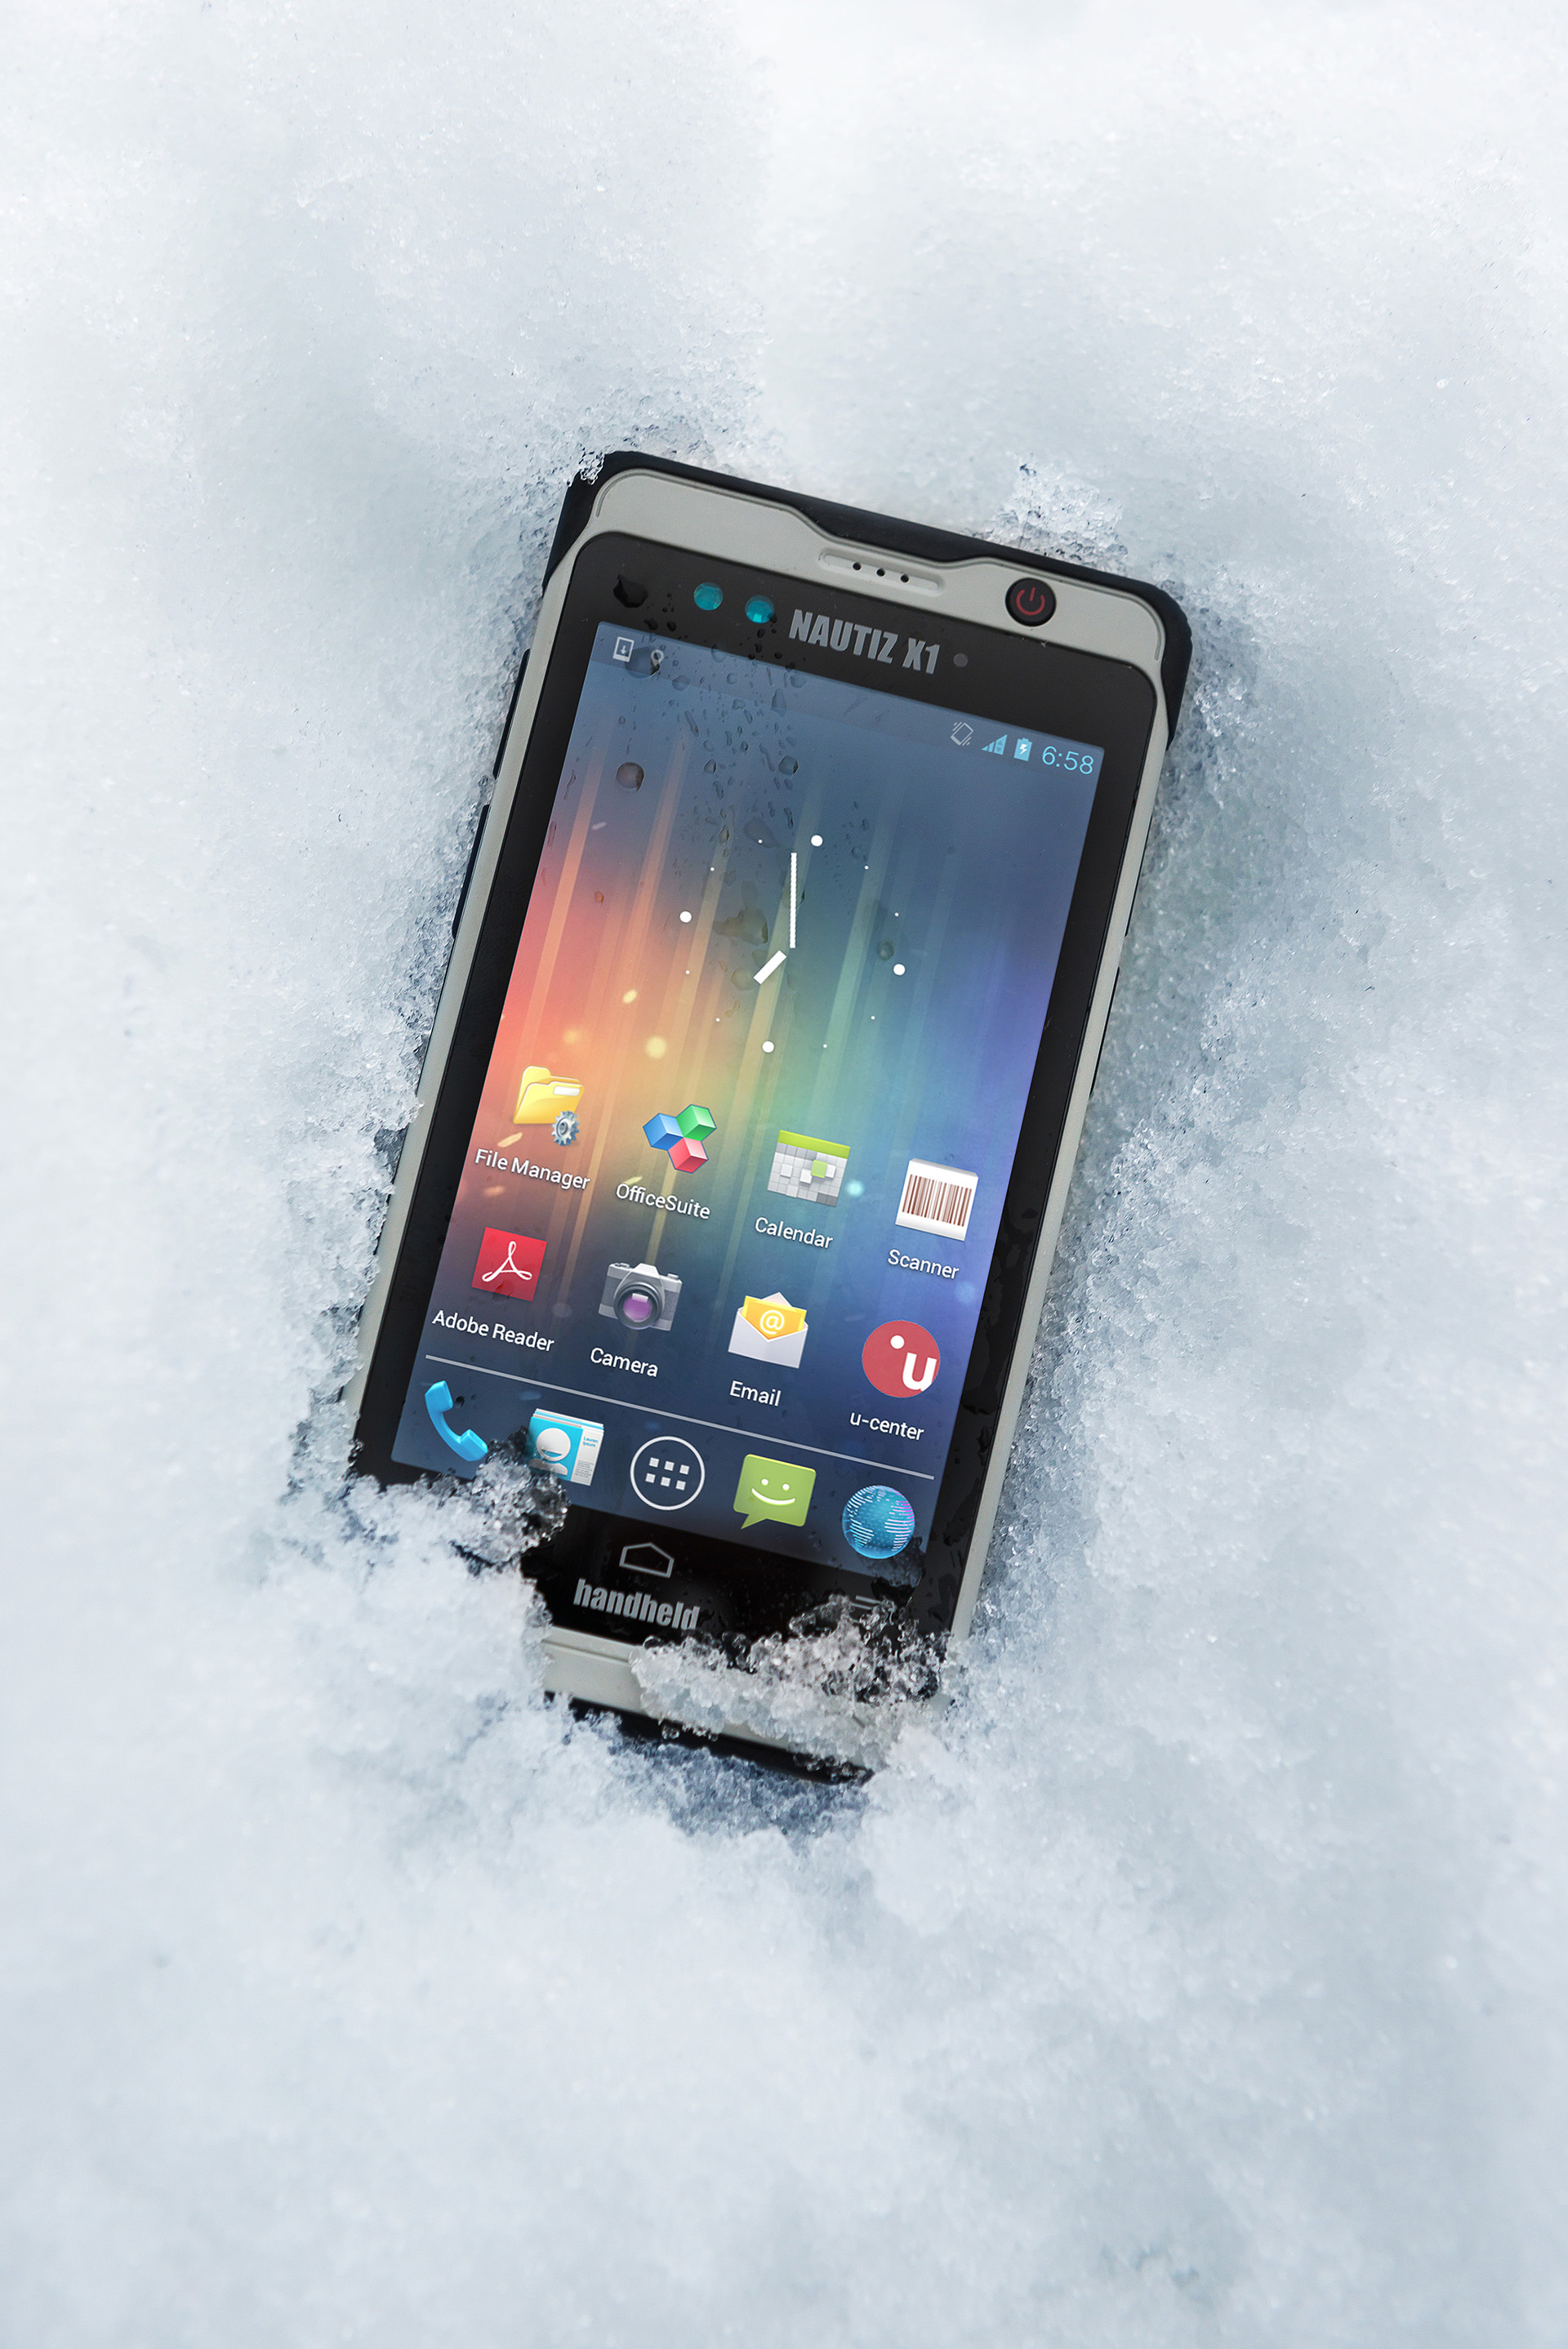 Nautiz-X1-rugged-handheld-IP67-snow.jpg